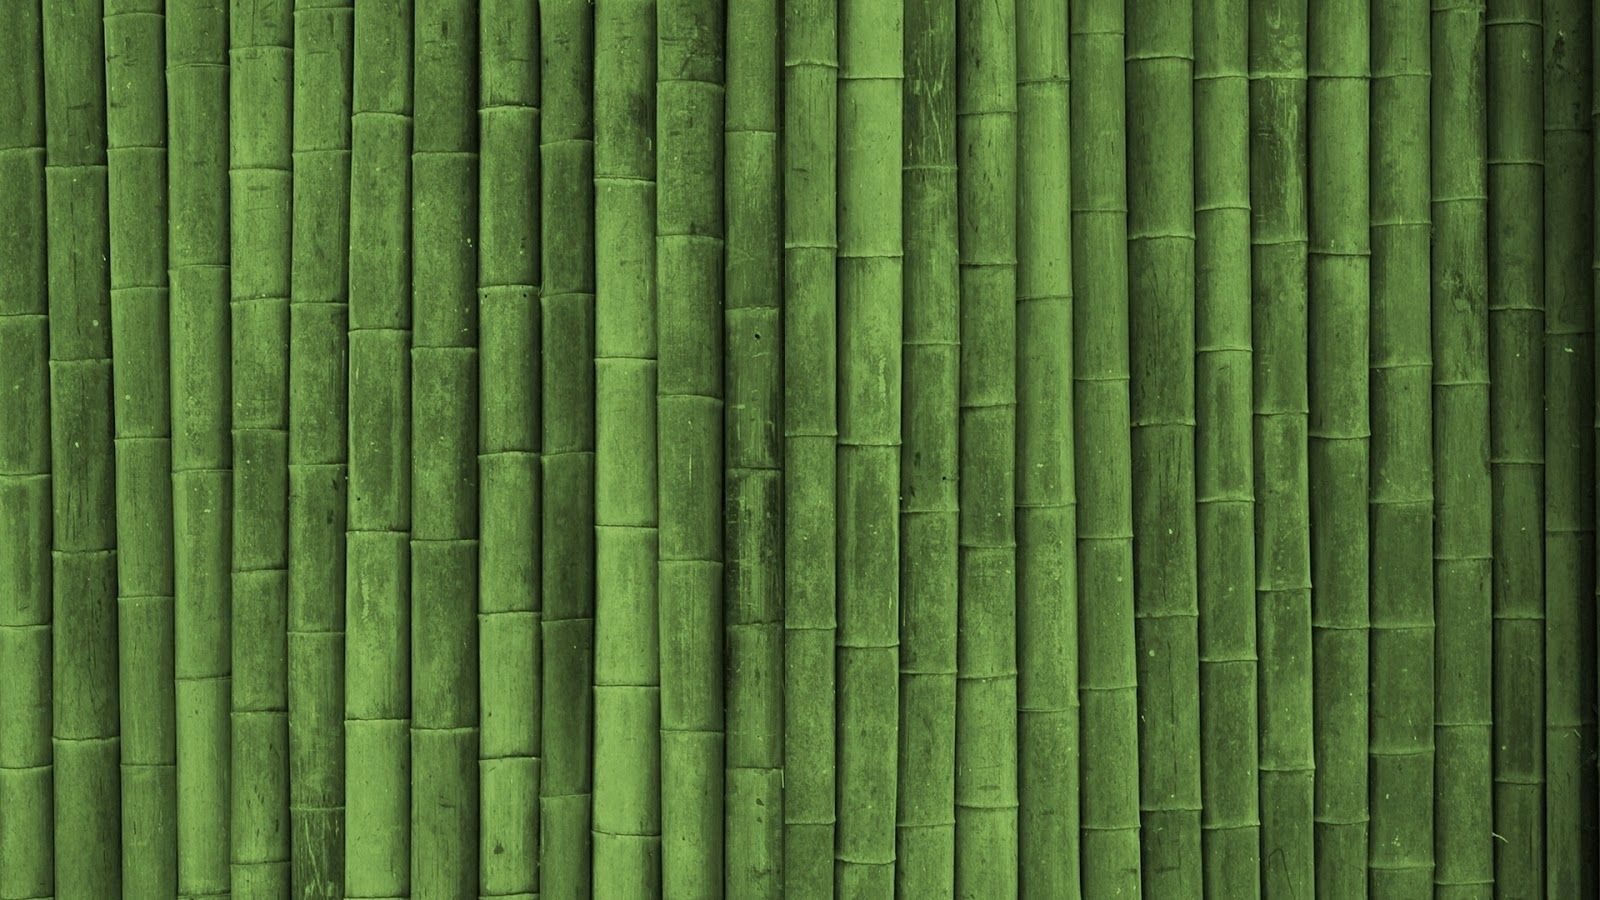 Green-bamboo-pattern-design-texture-template-HD-download.jpg